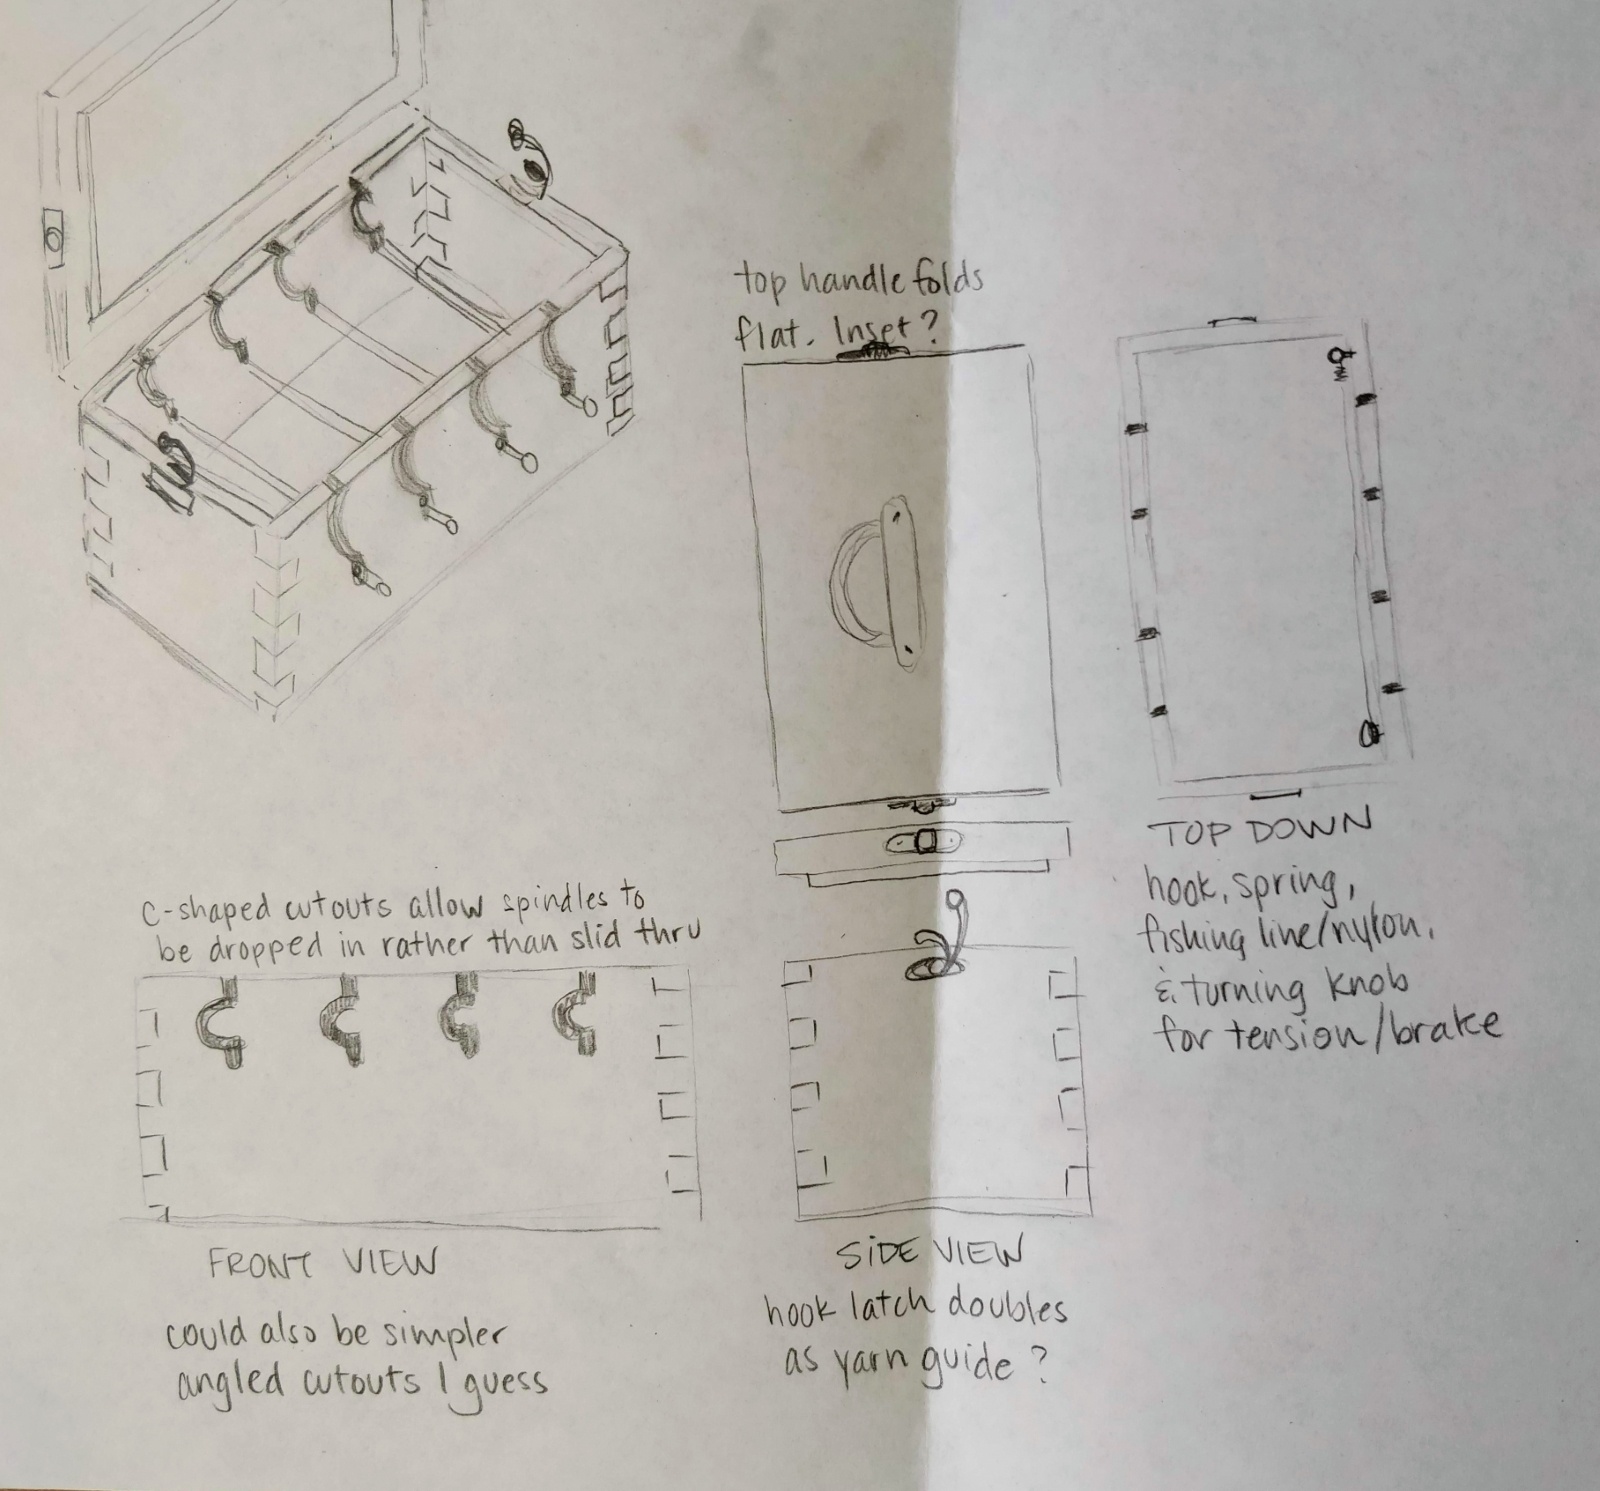 Hand-drawn plans for the construction of a lazy kate.